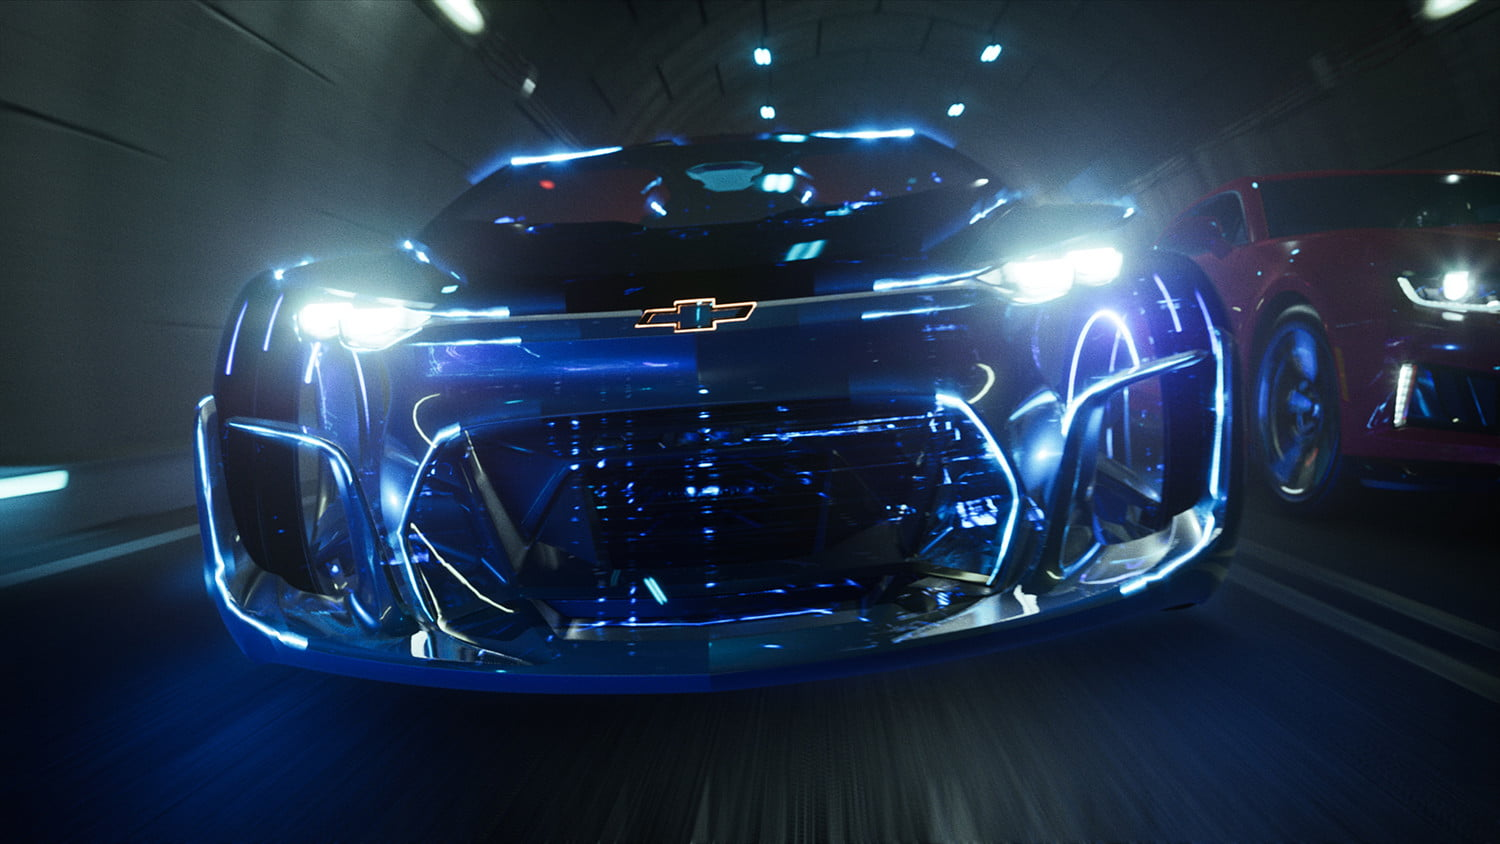 Epic Games Unreal Engine 4 Powers New Chevrolet Car